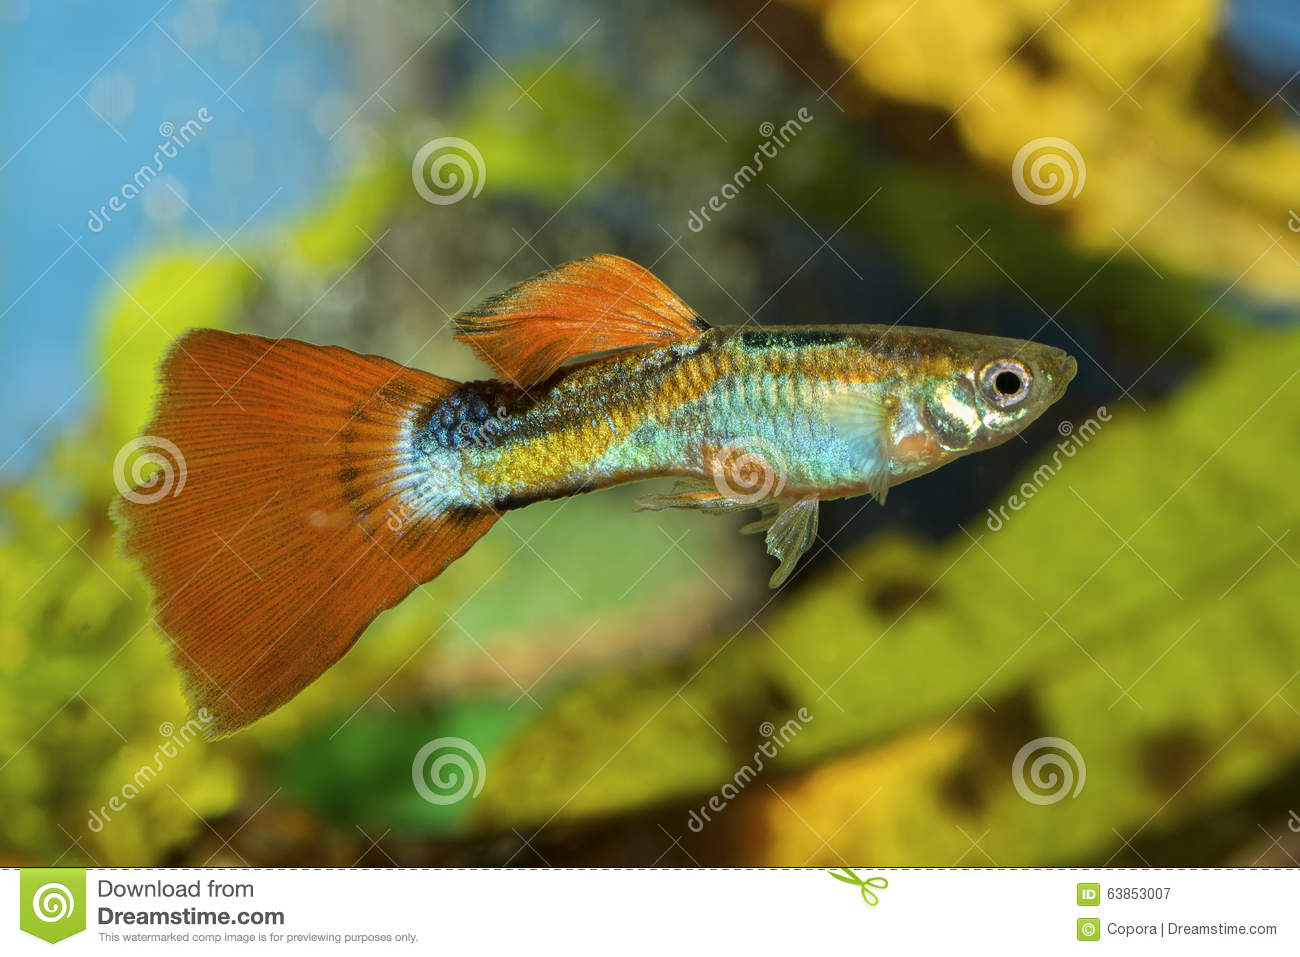 Poissons de guppy dans un aquarium image stock image for Alimentation guppy poisson rouge